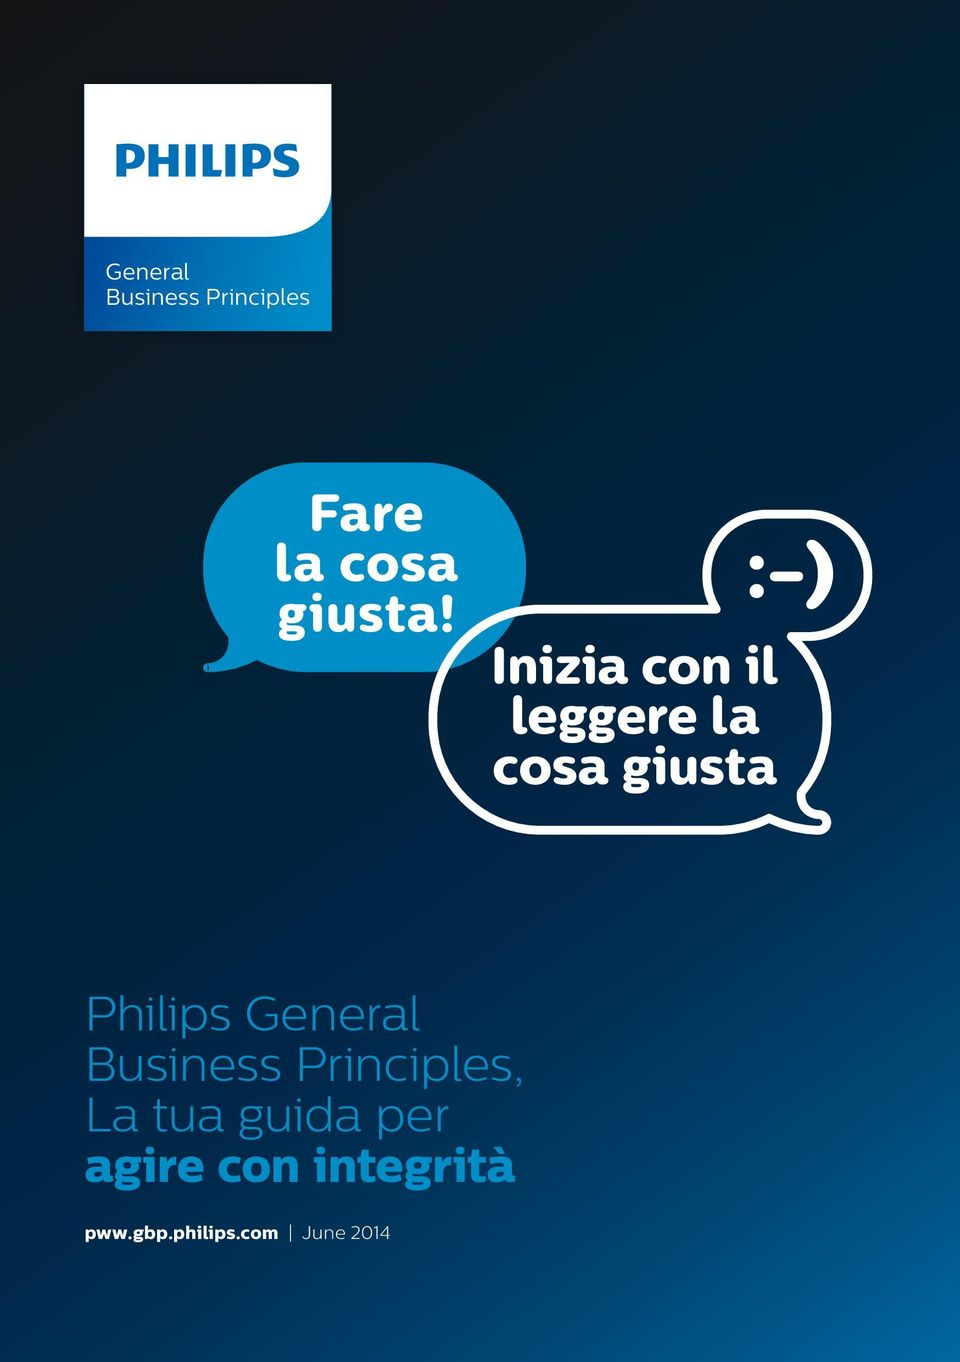 General Business Principles, La tua guida per